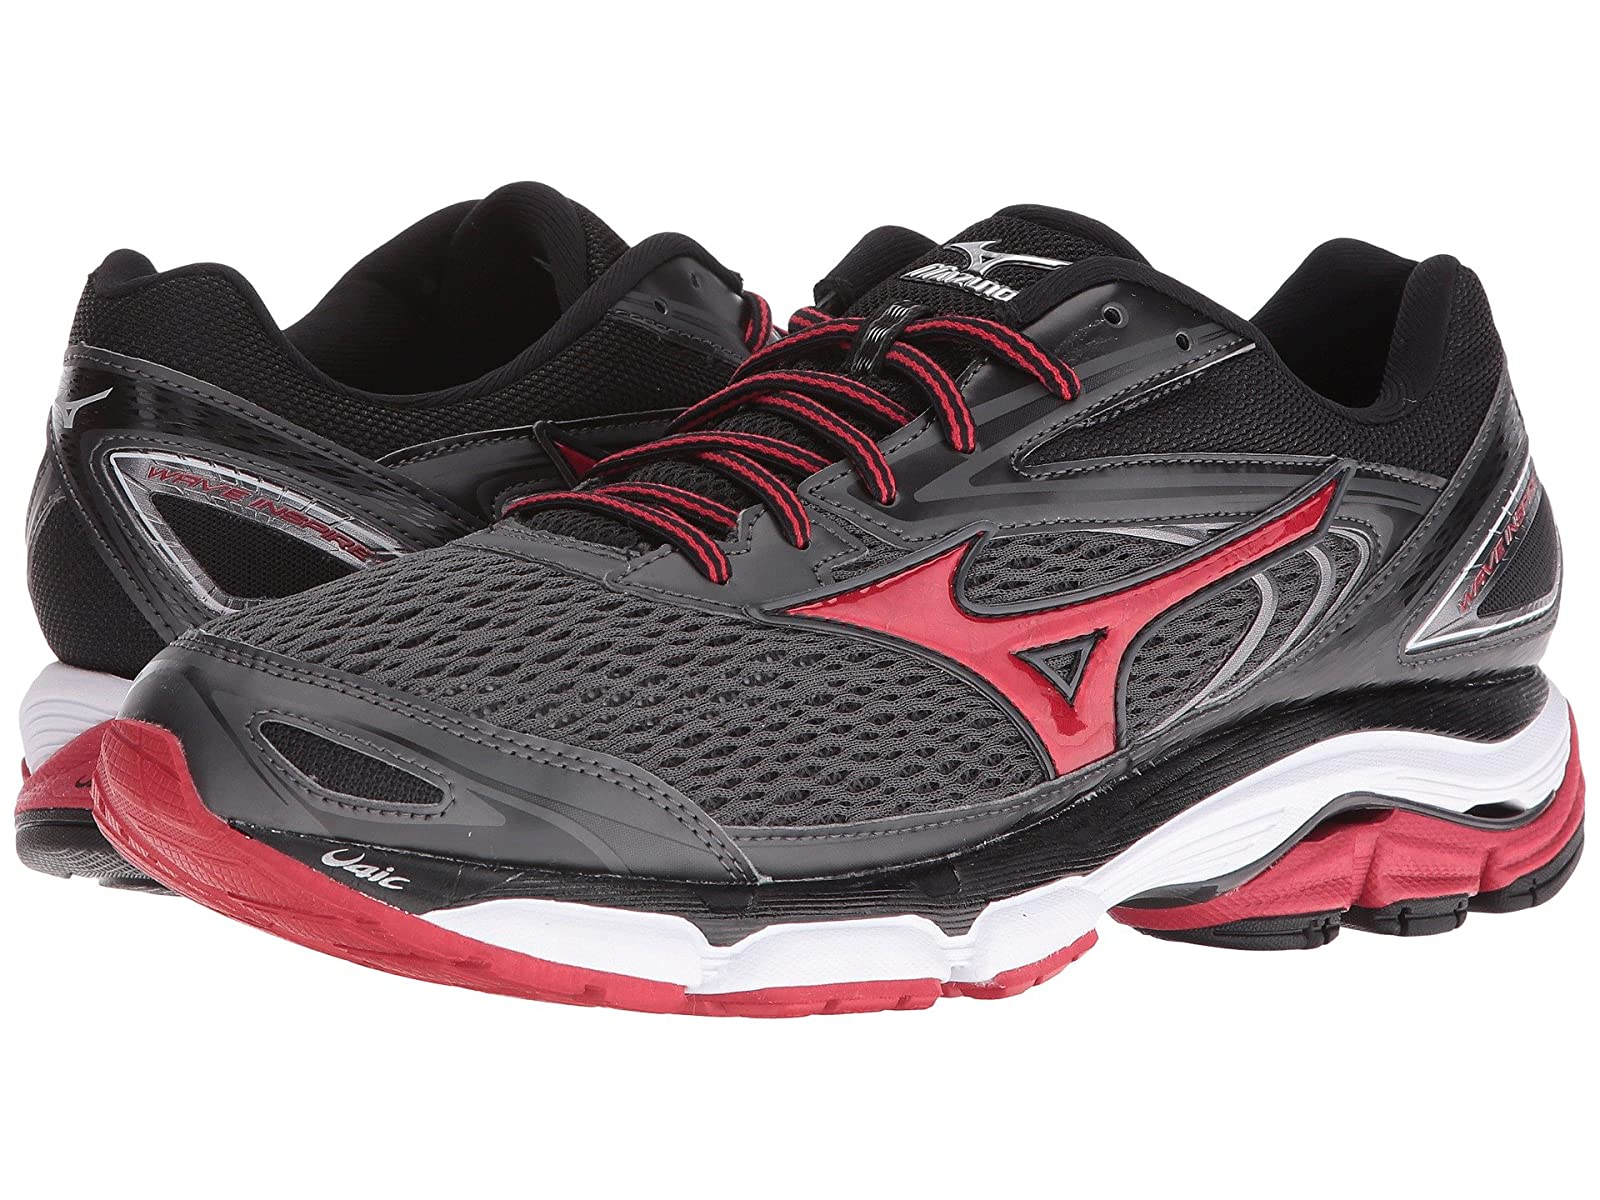 Mizuno Wave Inspire 13Cheap and distinctive eye-catching shoes